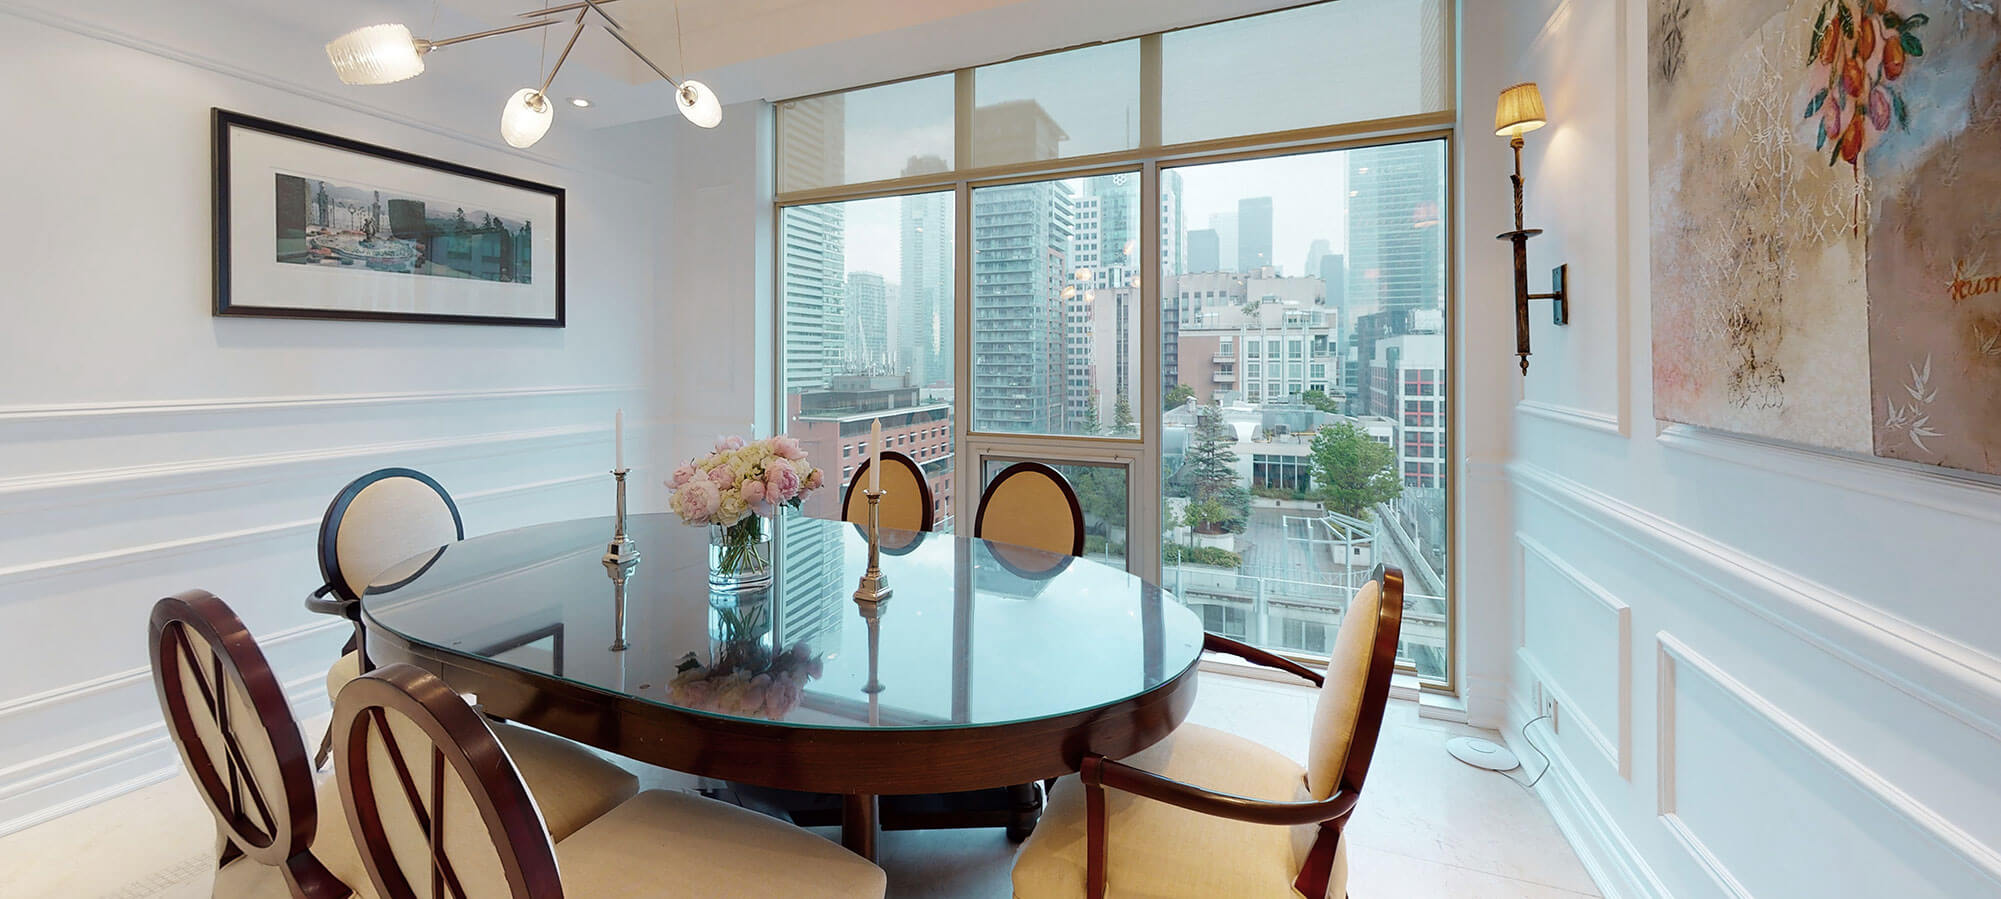 Dining room at The SoHo Hotel 3-storey Penthouse